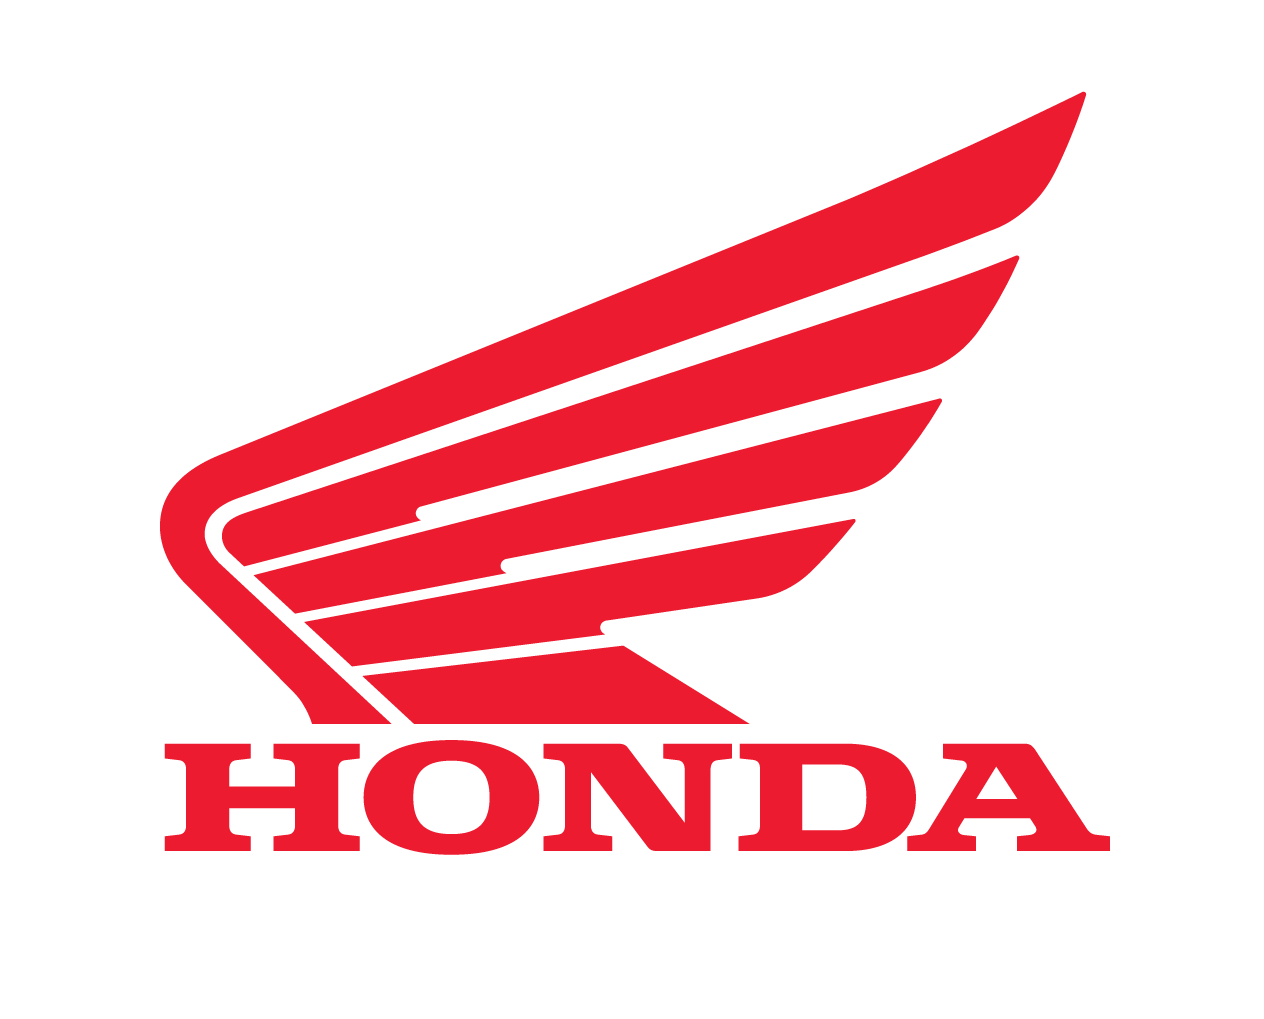 Honda_wingmark_red logo